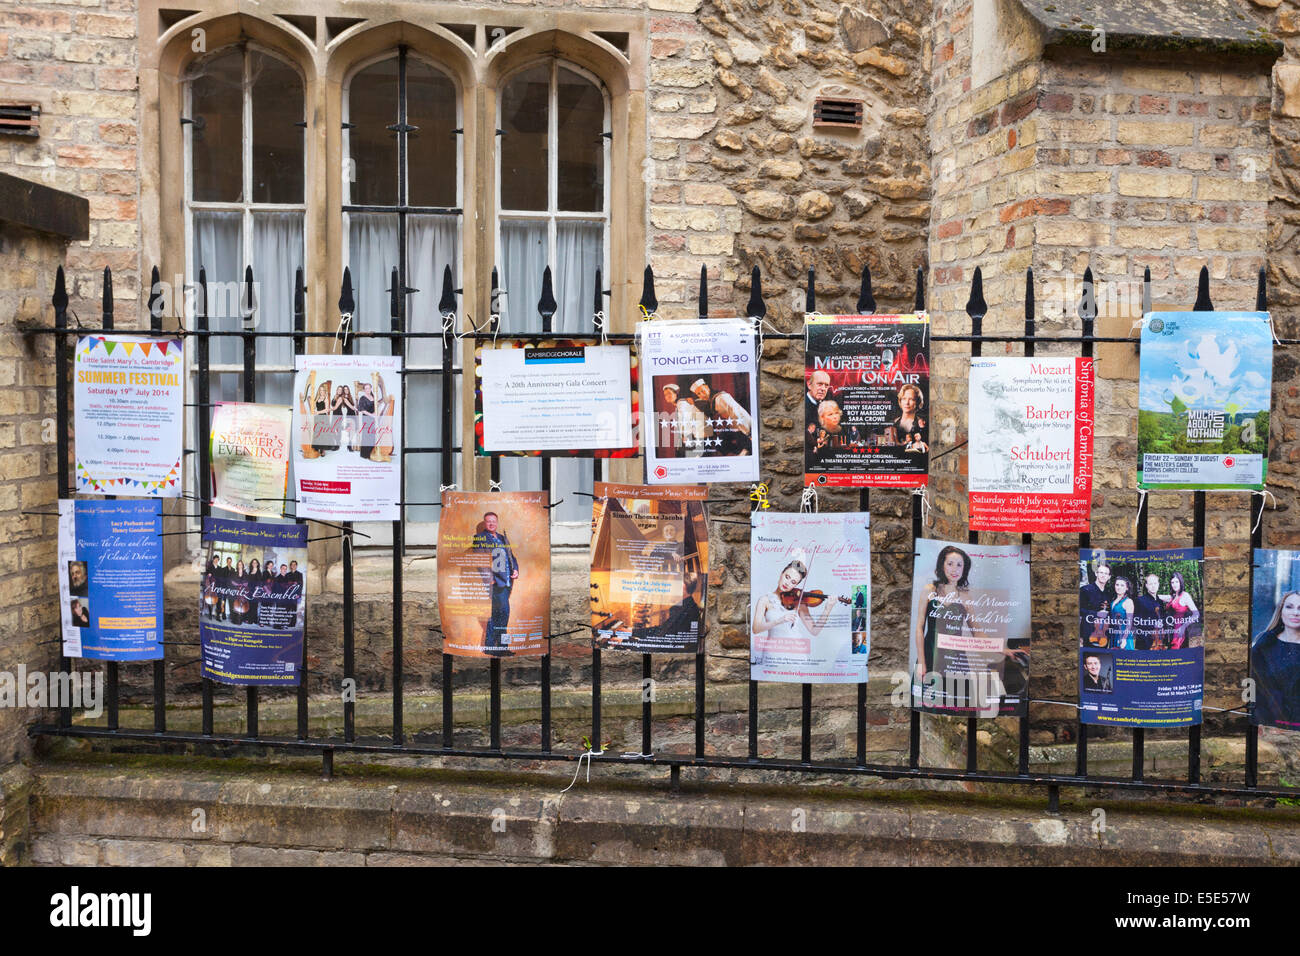 Advertisements for concerts on a wet day in the university city of Cambridge UK - Stock Image